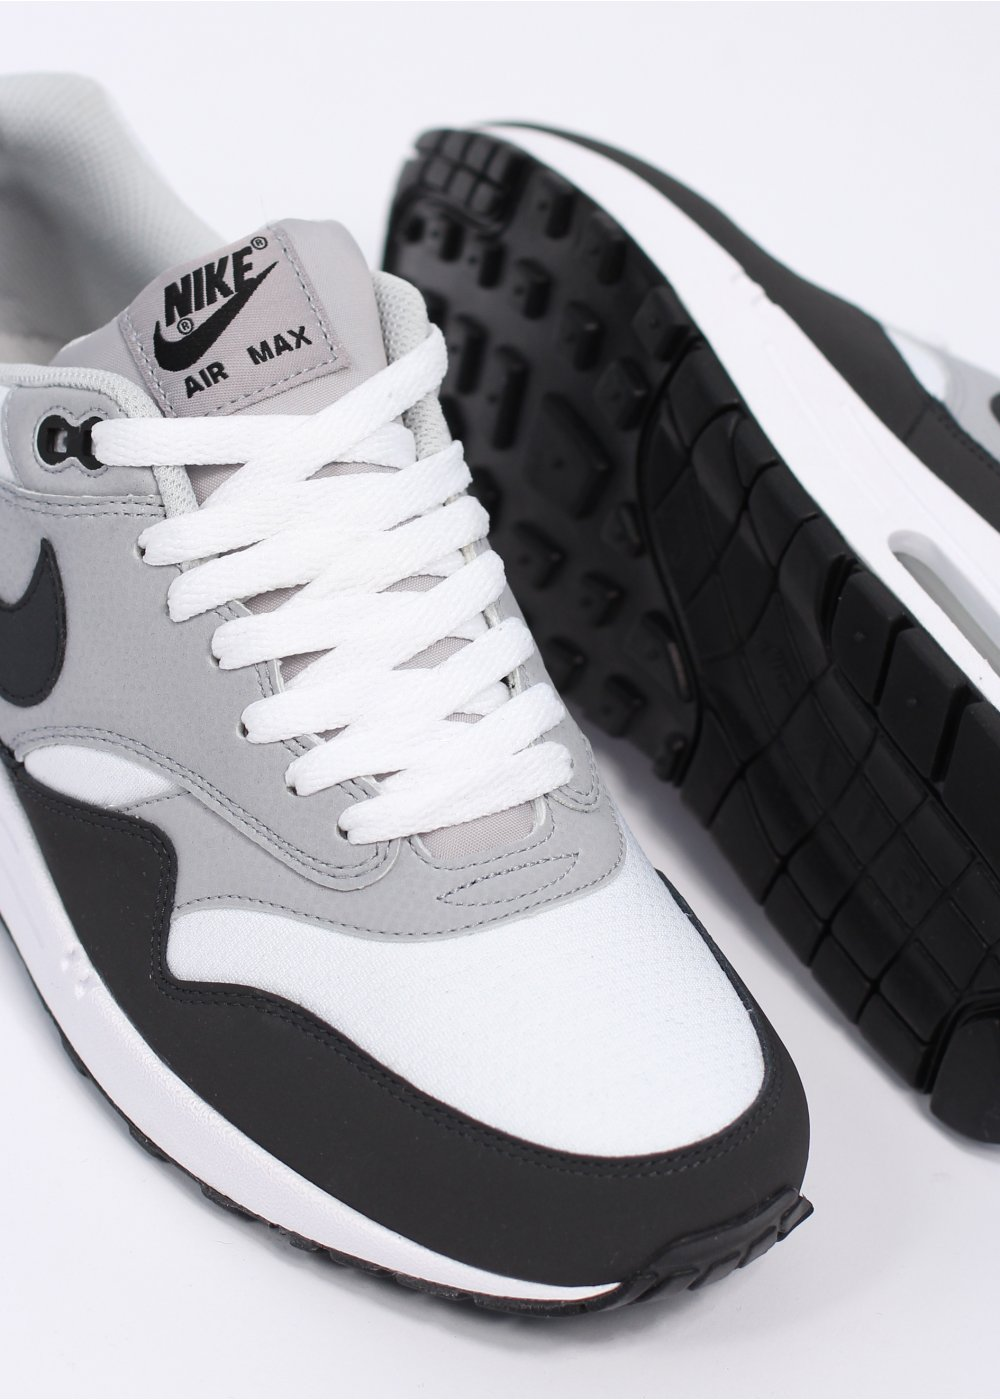 new product 5edbc 7fc50 Air Max 1 Essential Trainers - White   Anthracite